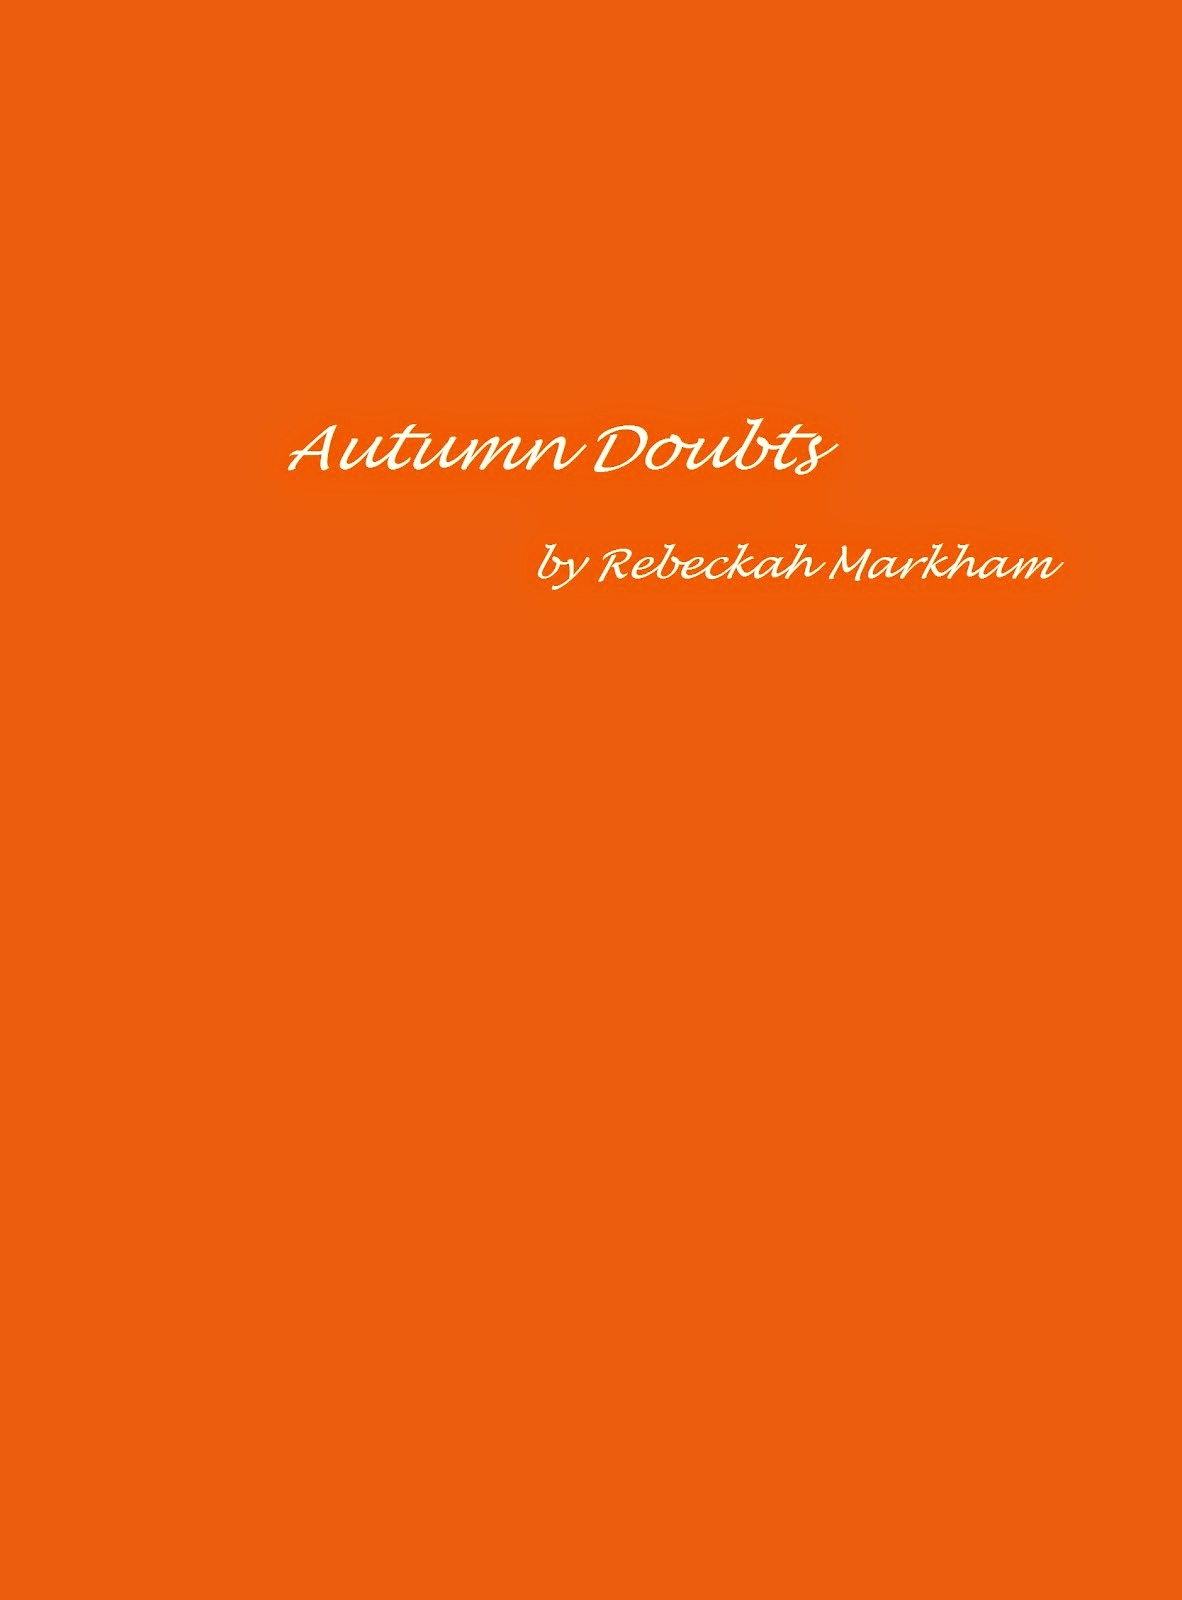 Autumn Doubts